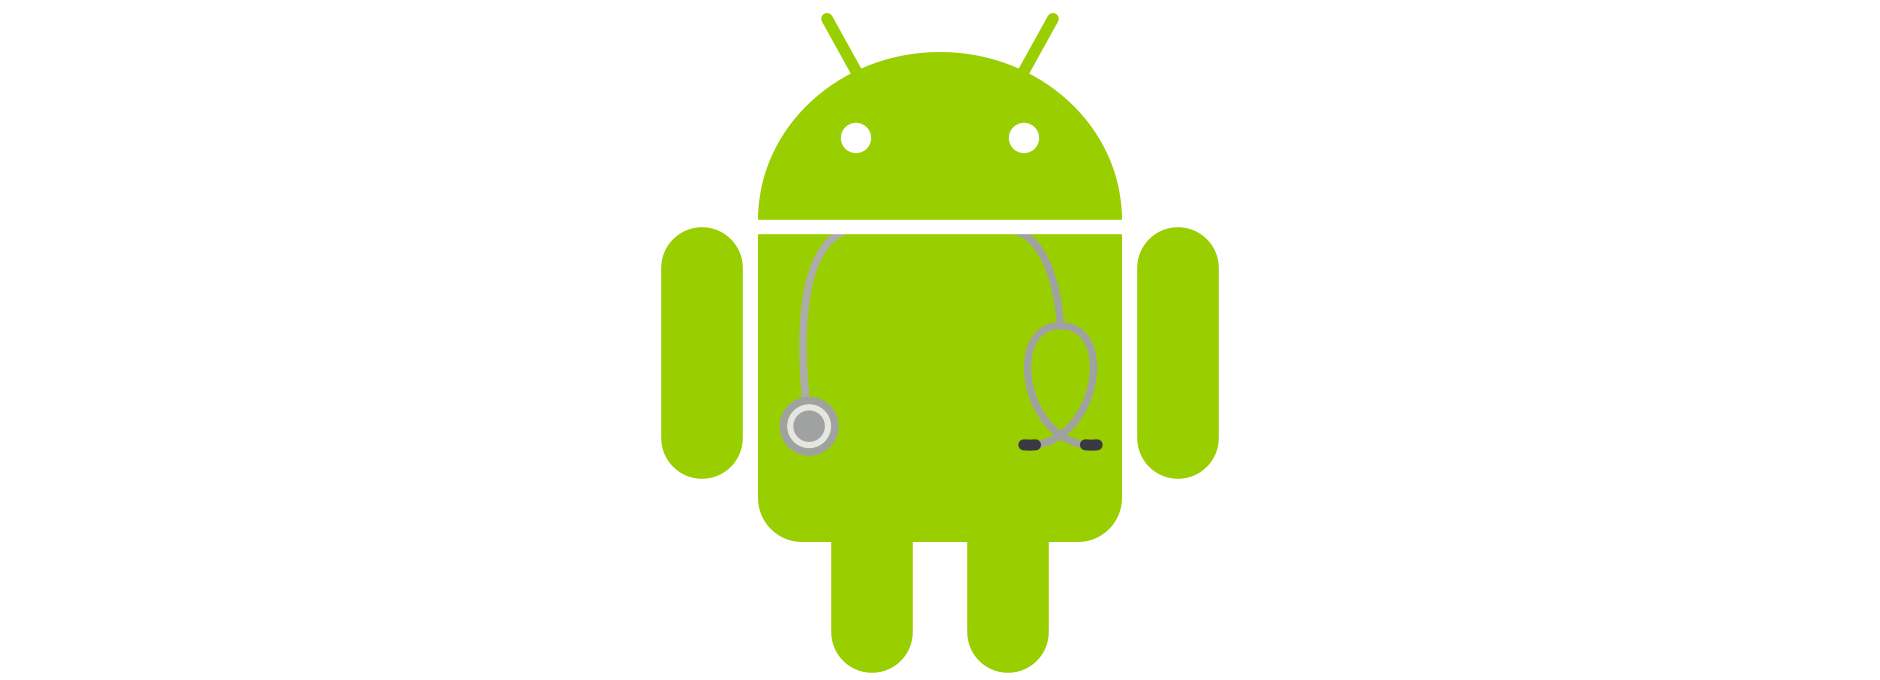 Android doctor